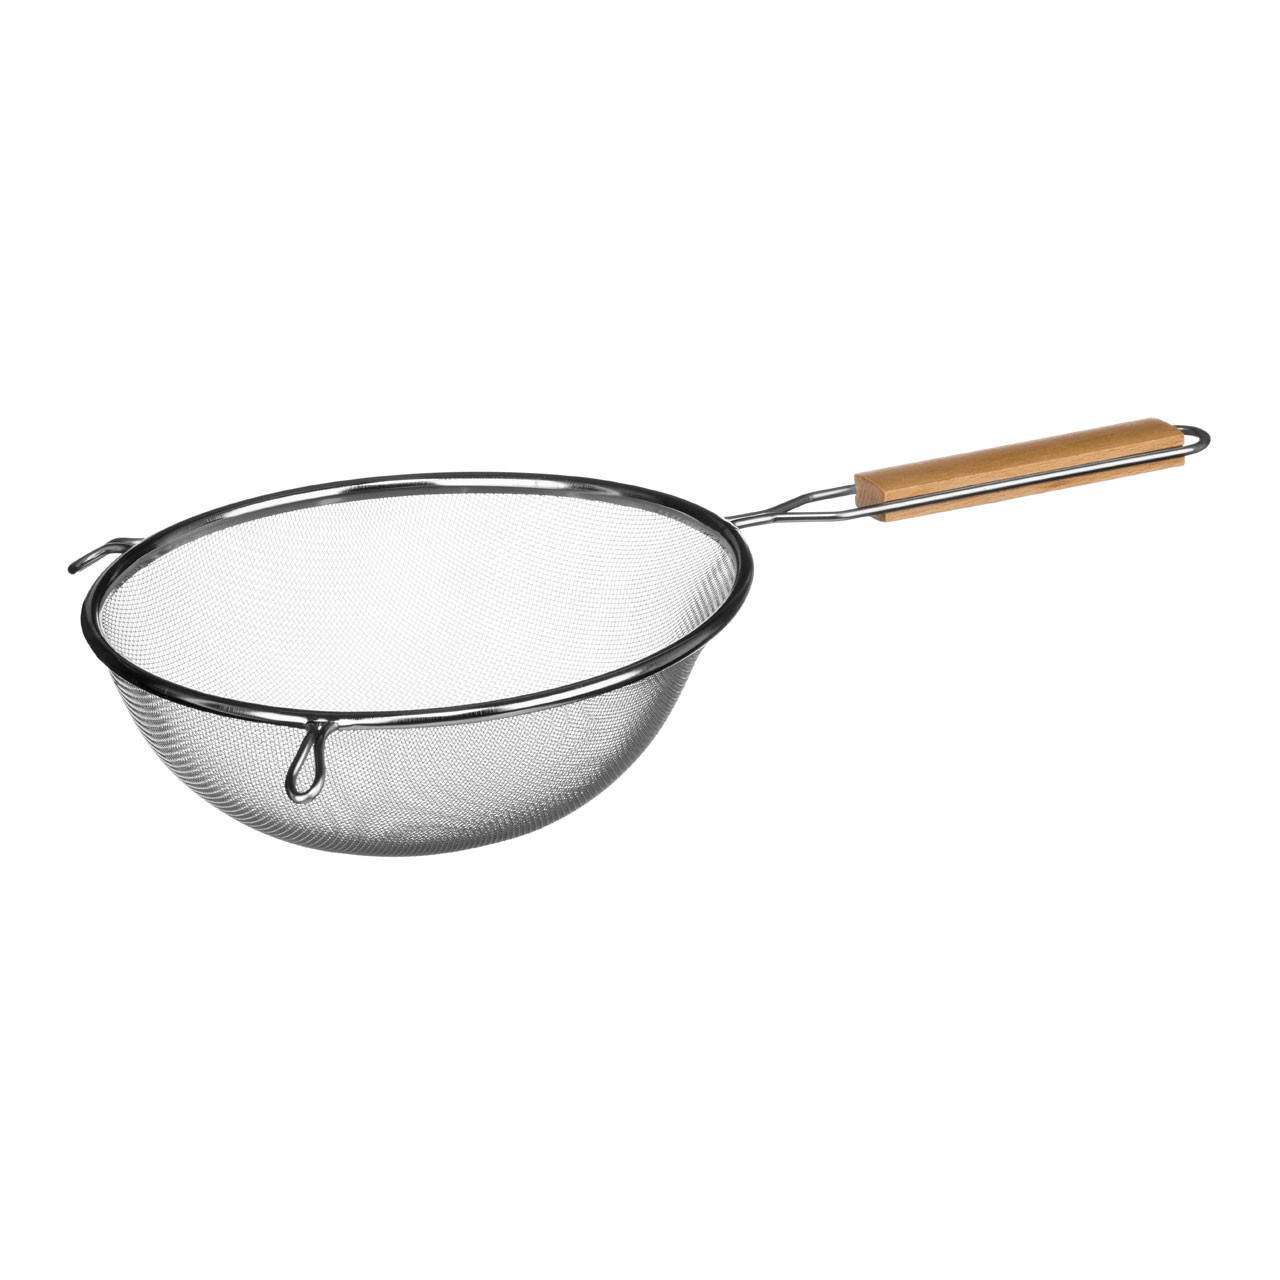 Sieve Stainless Steel/Wooden Handle